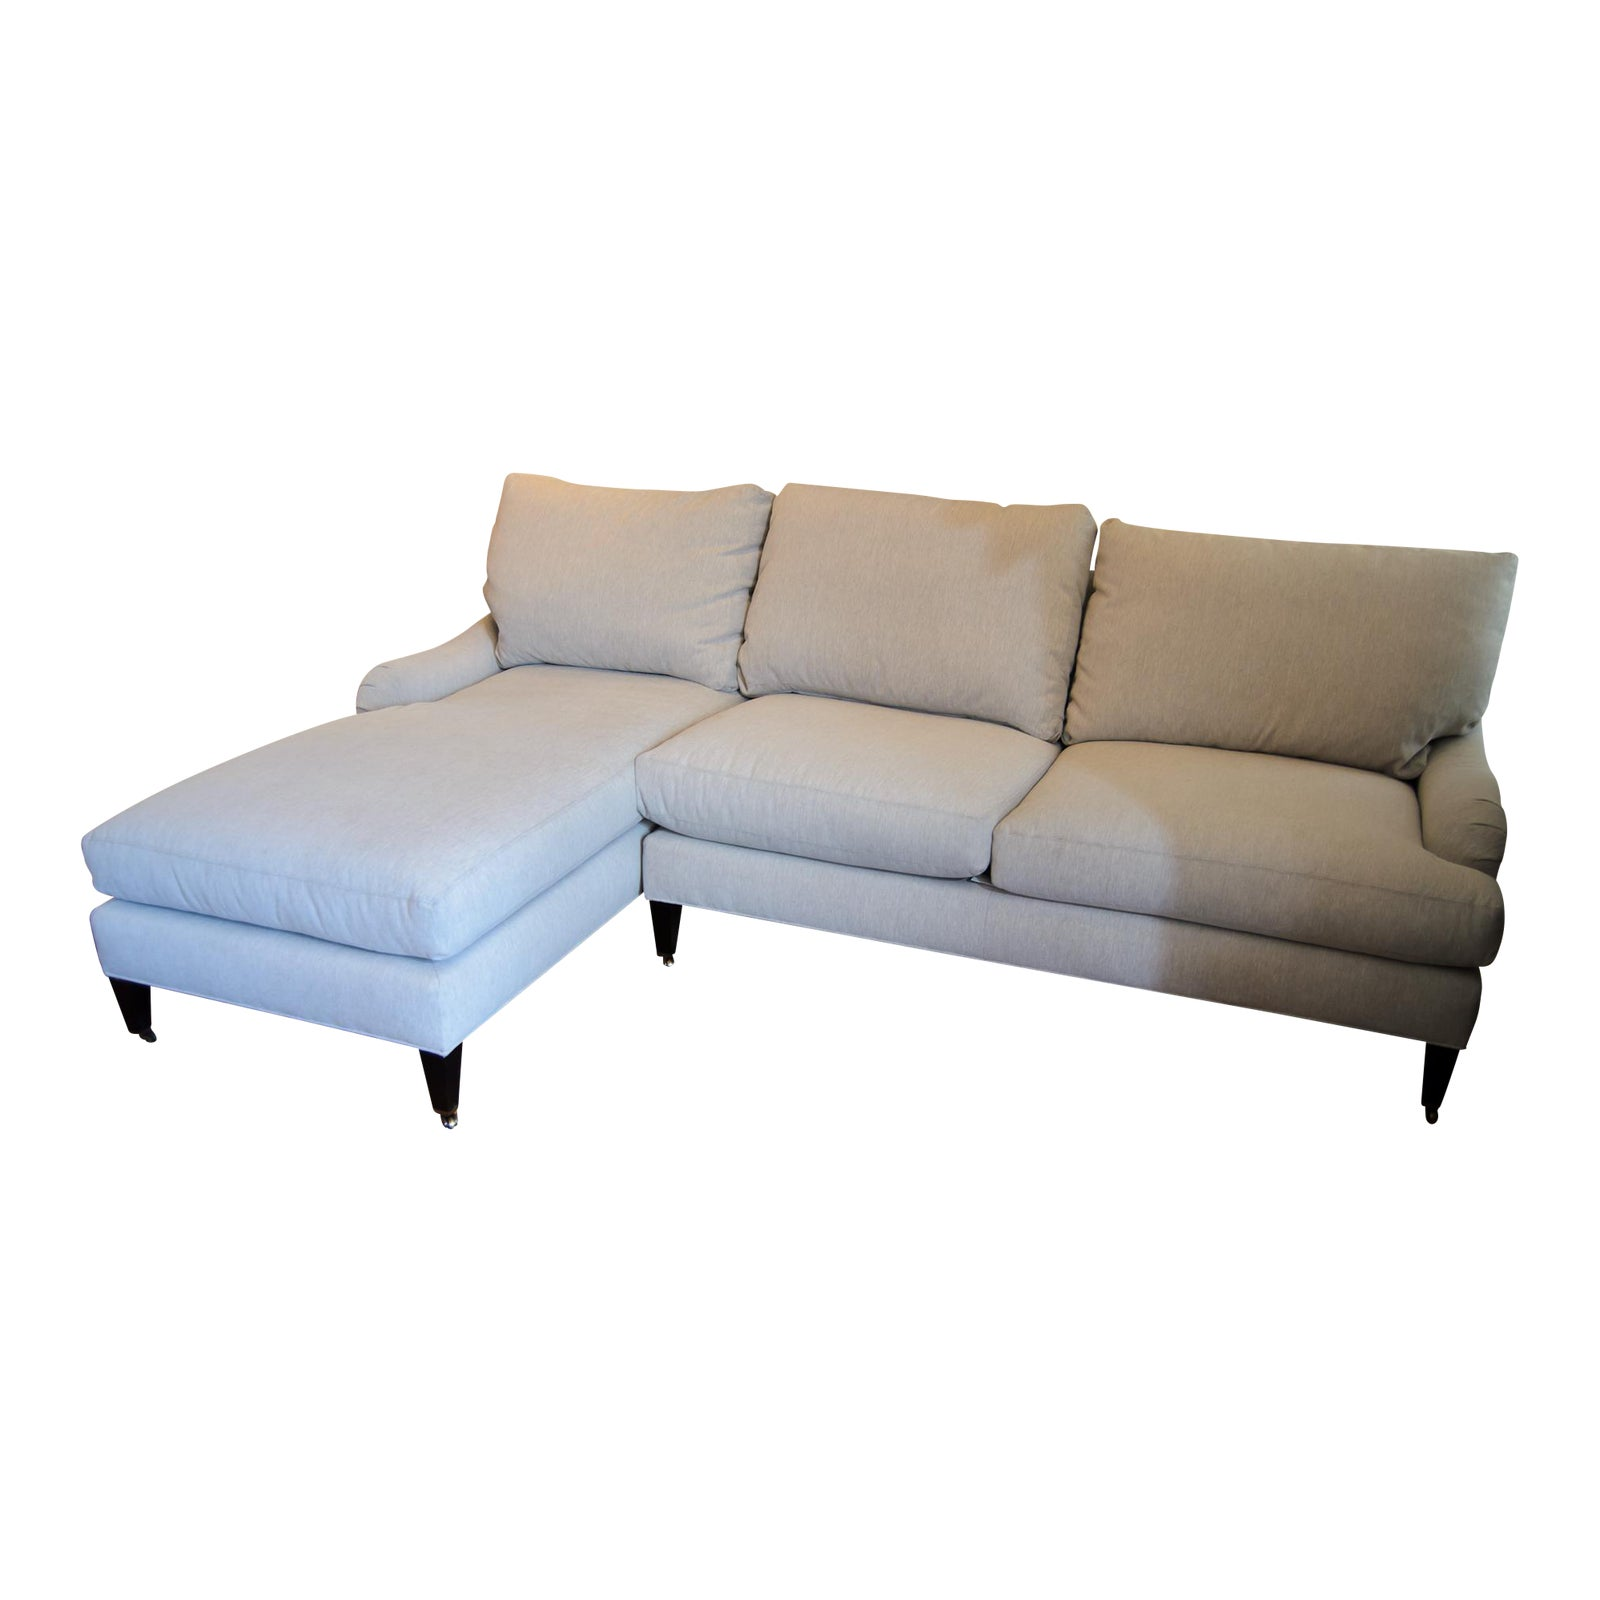 living delta life room moneyfit lee ottoman by co popular sectional delt blogger city tour